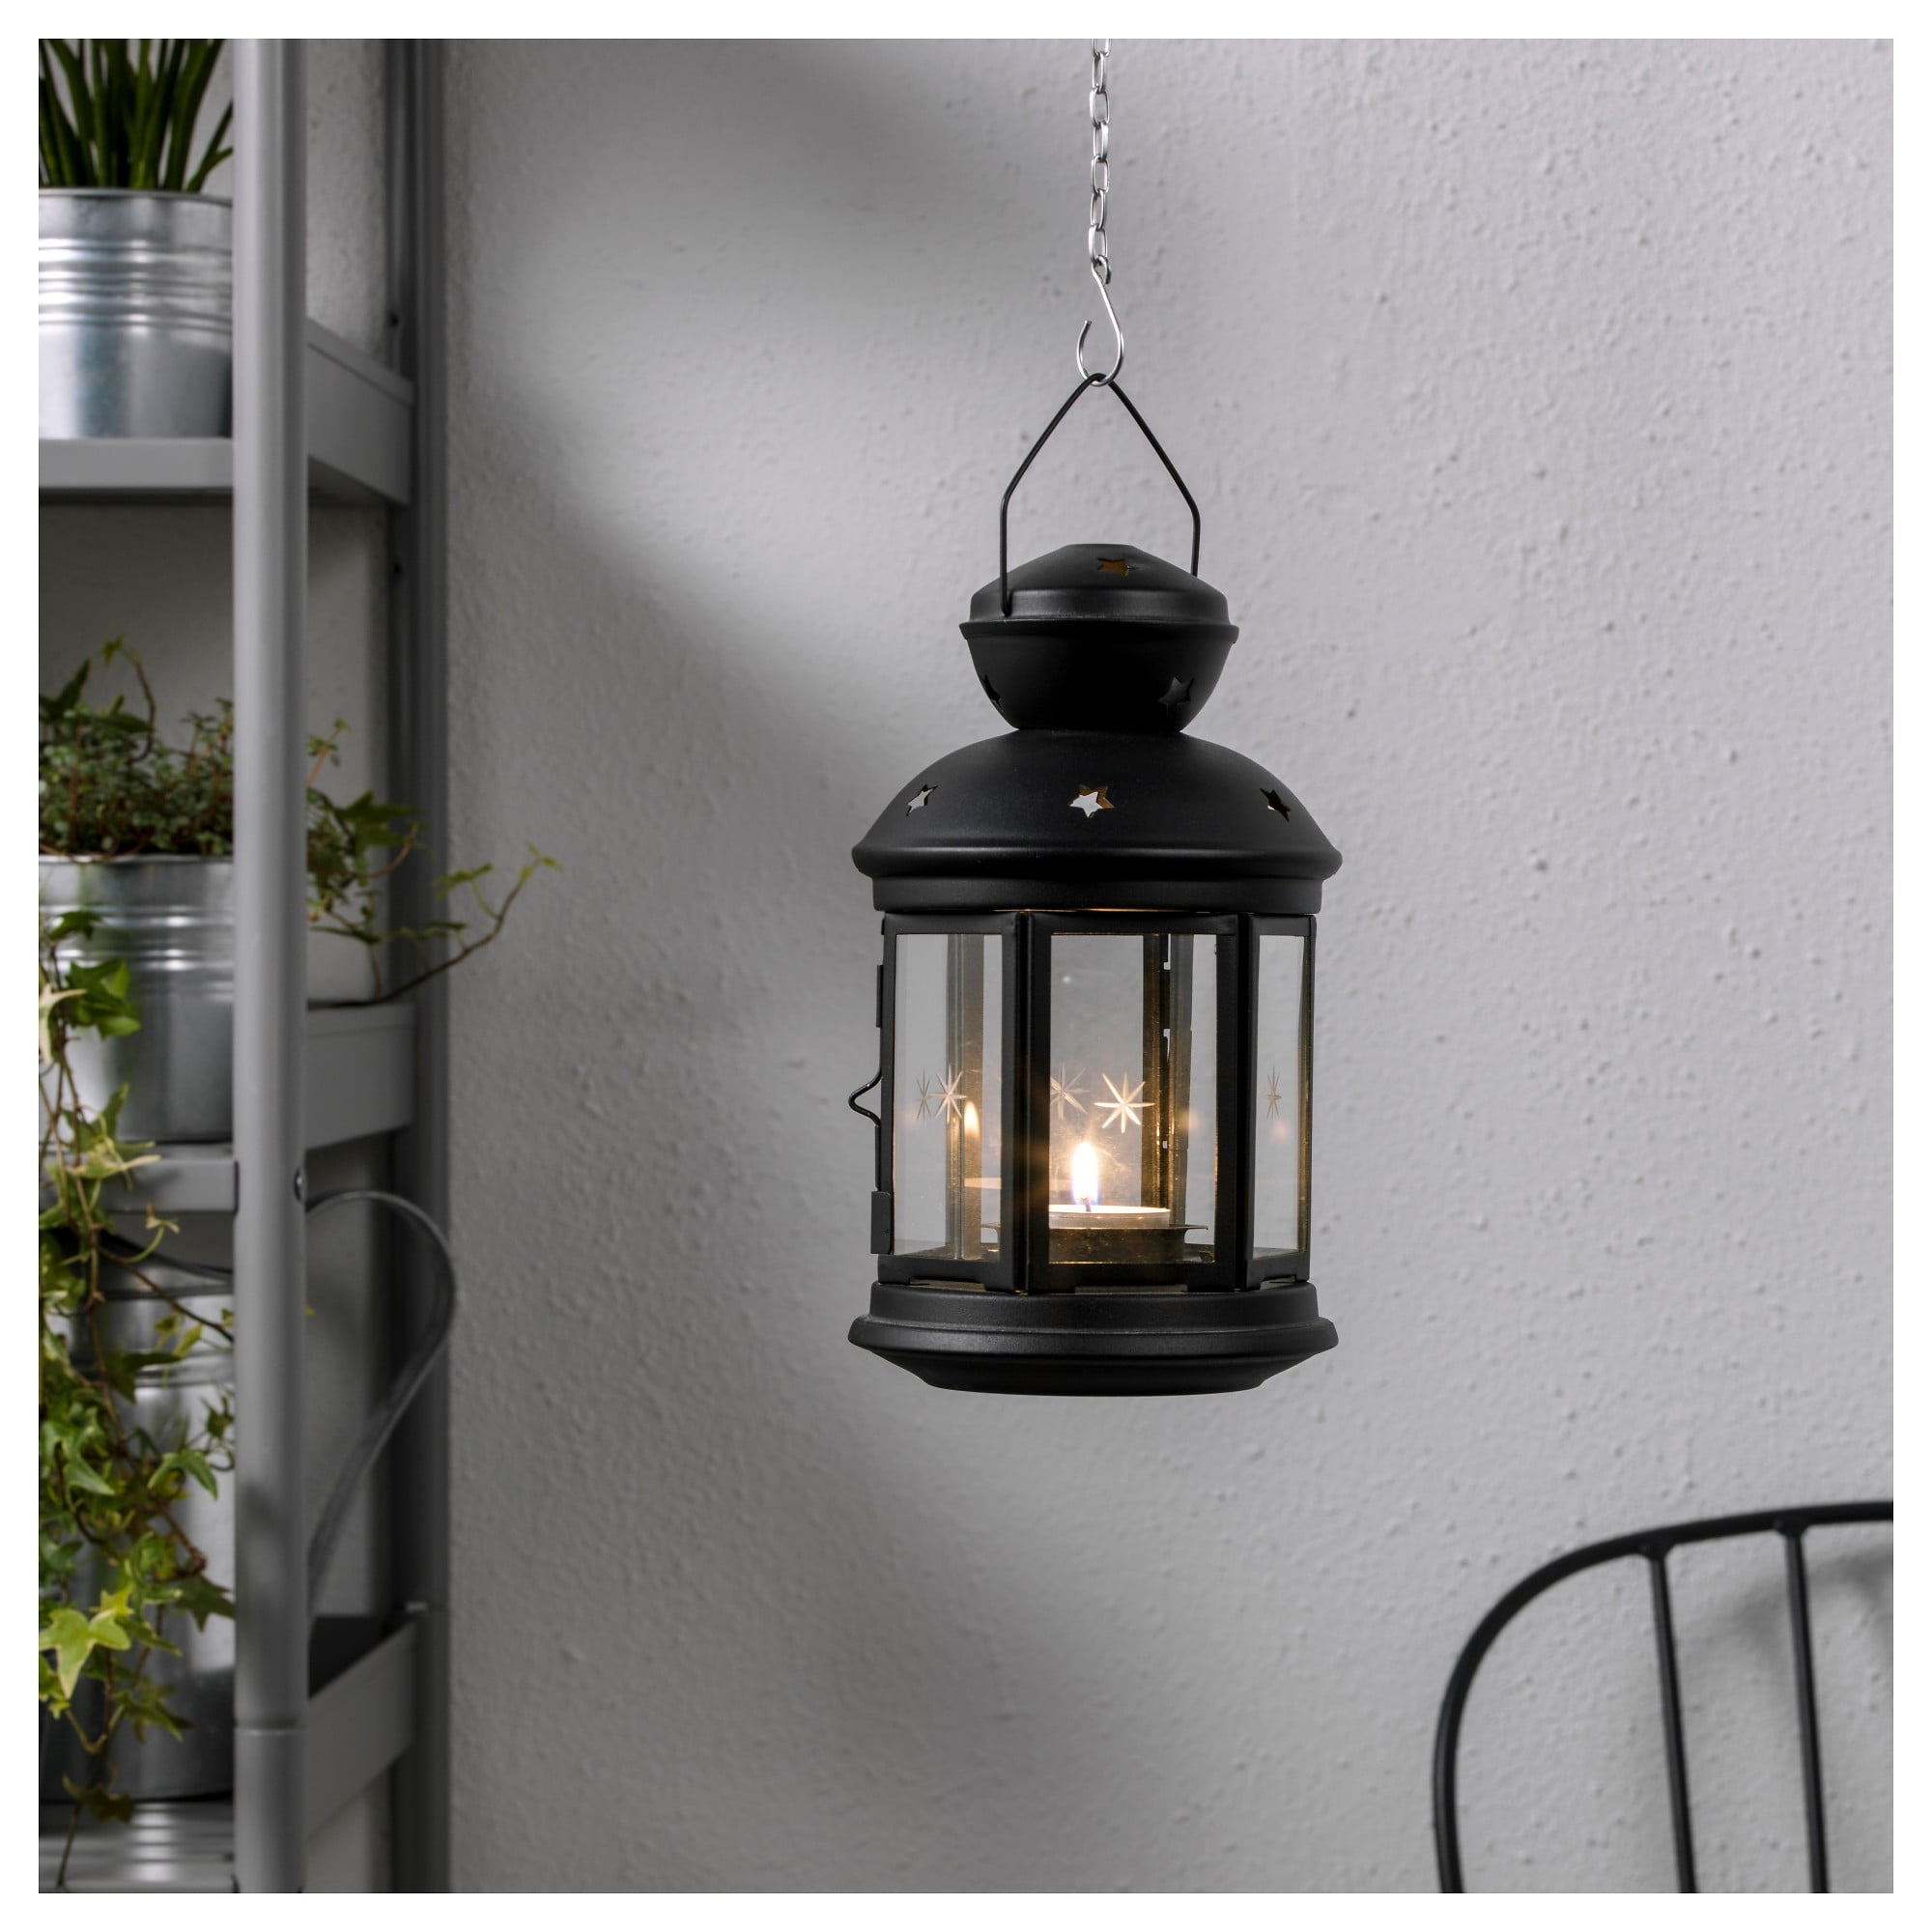 Rotera Lantern For Tealight - Ikea intended for Ikea Outdoor Lanterns (Image 13 of 20)